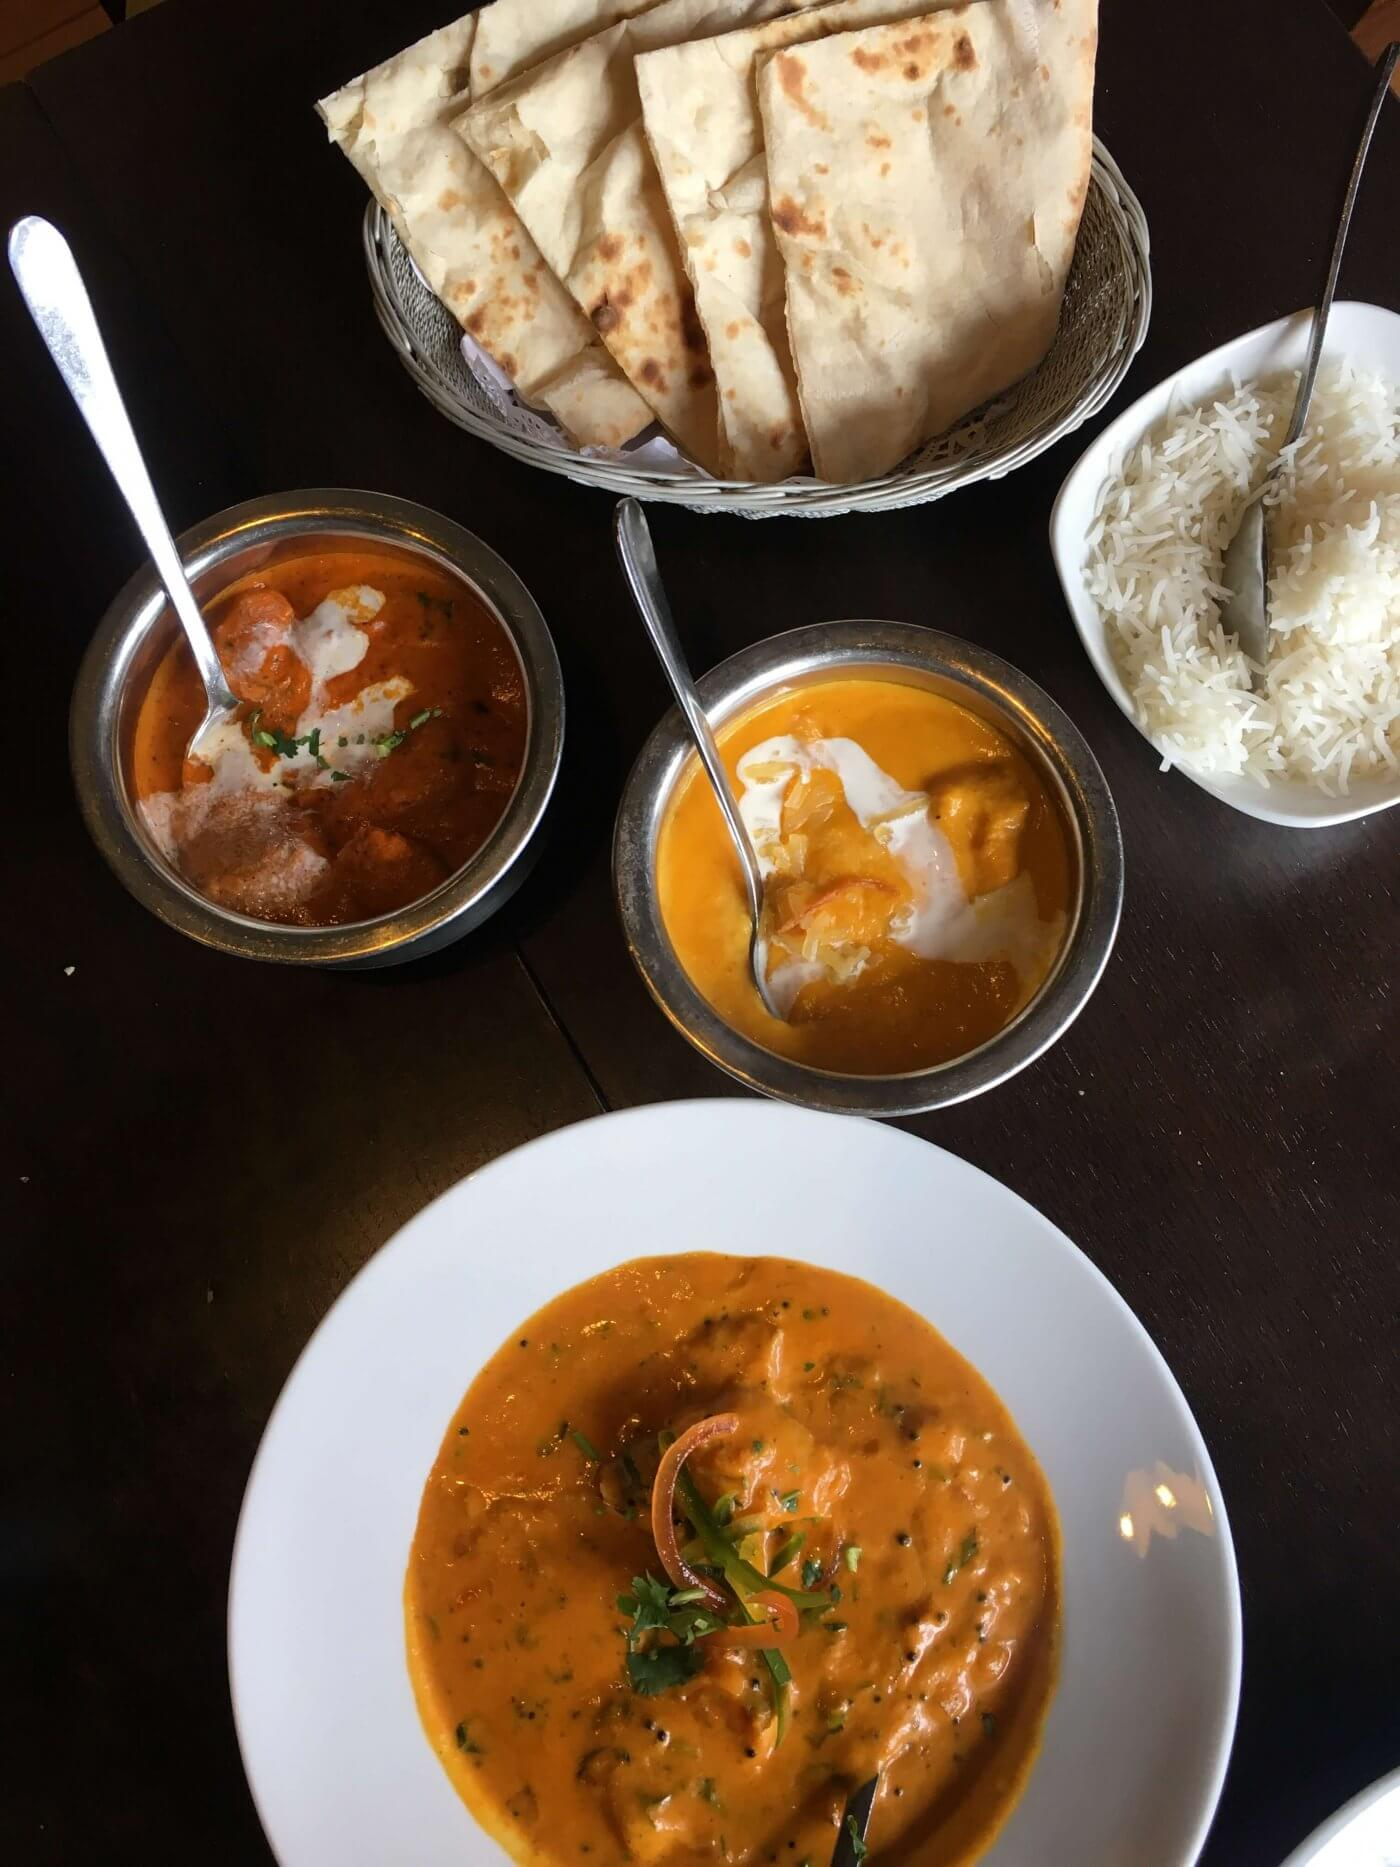 Curry & Naan | The Mustcard